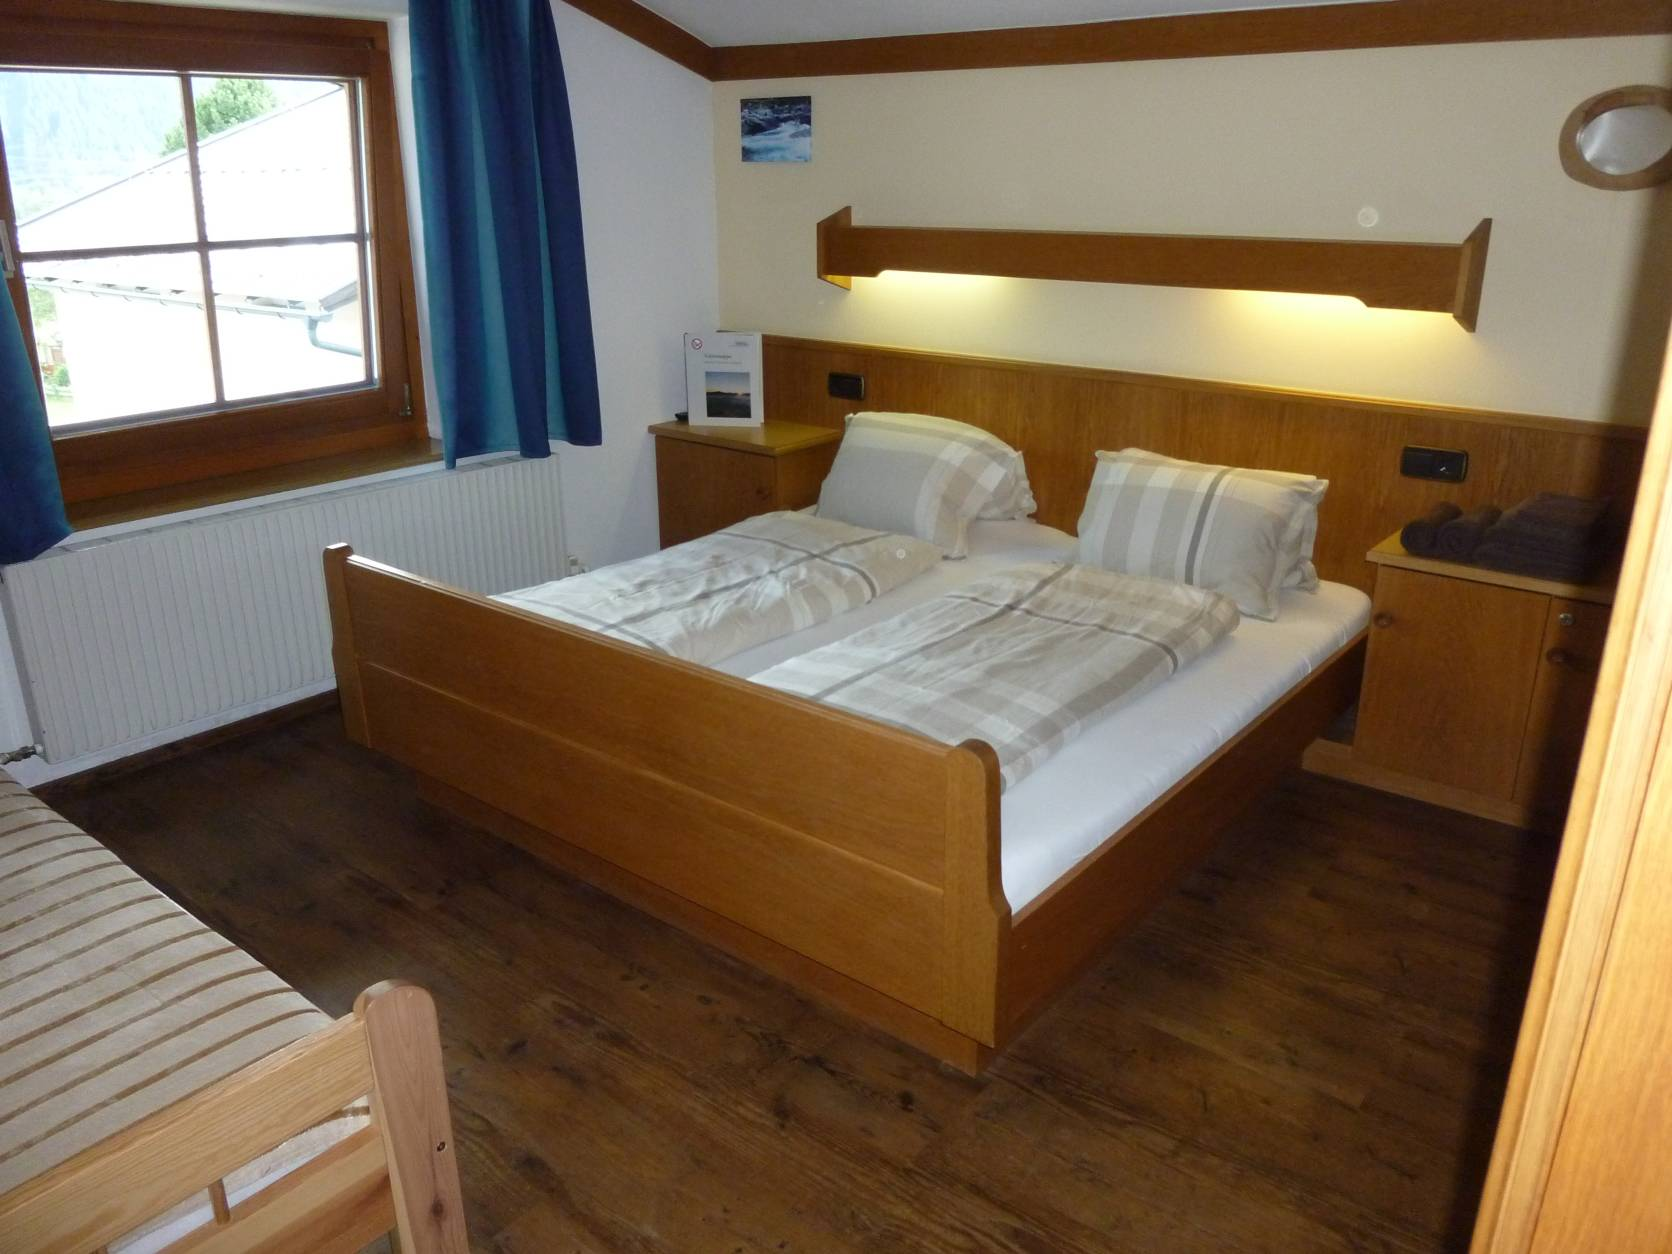 Three-bedded room Pension zu Hause